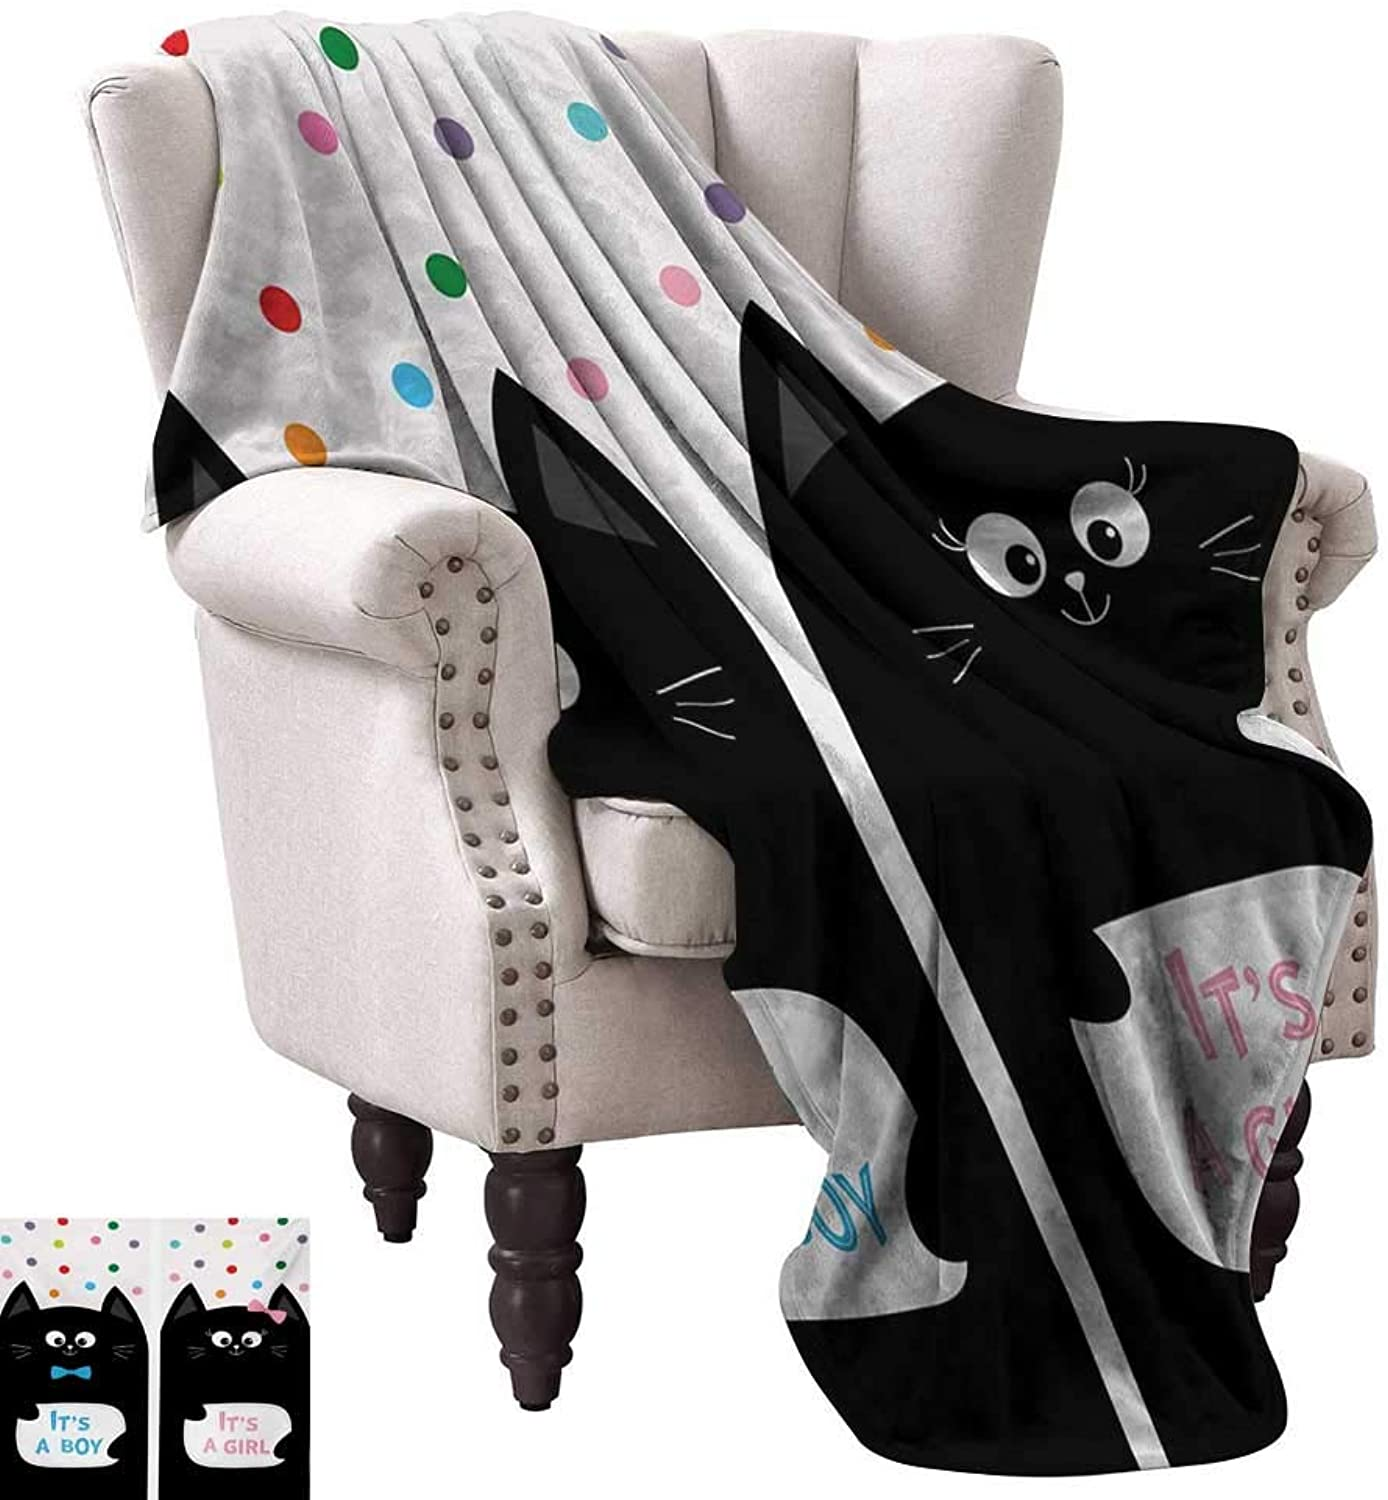 Anyangeight Warm Microfiber All Season Blanket,Its A Boy Cards with Cats Little Baby Cute Kitty Polka Dots Funny Print 60 x50 ,Super Soft and Comfortable,Suitable for Sofas,Chairs,beds